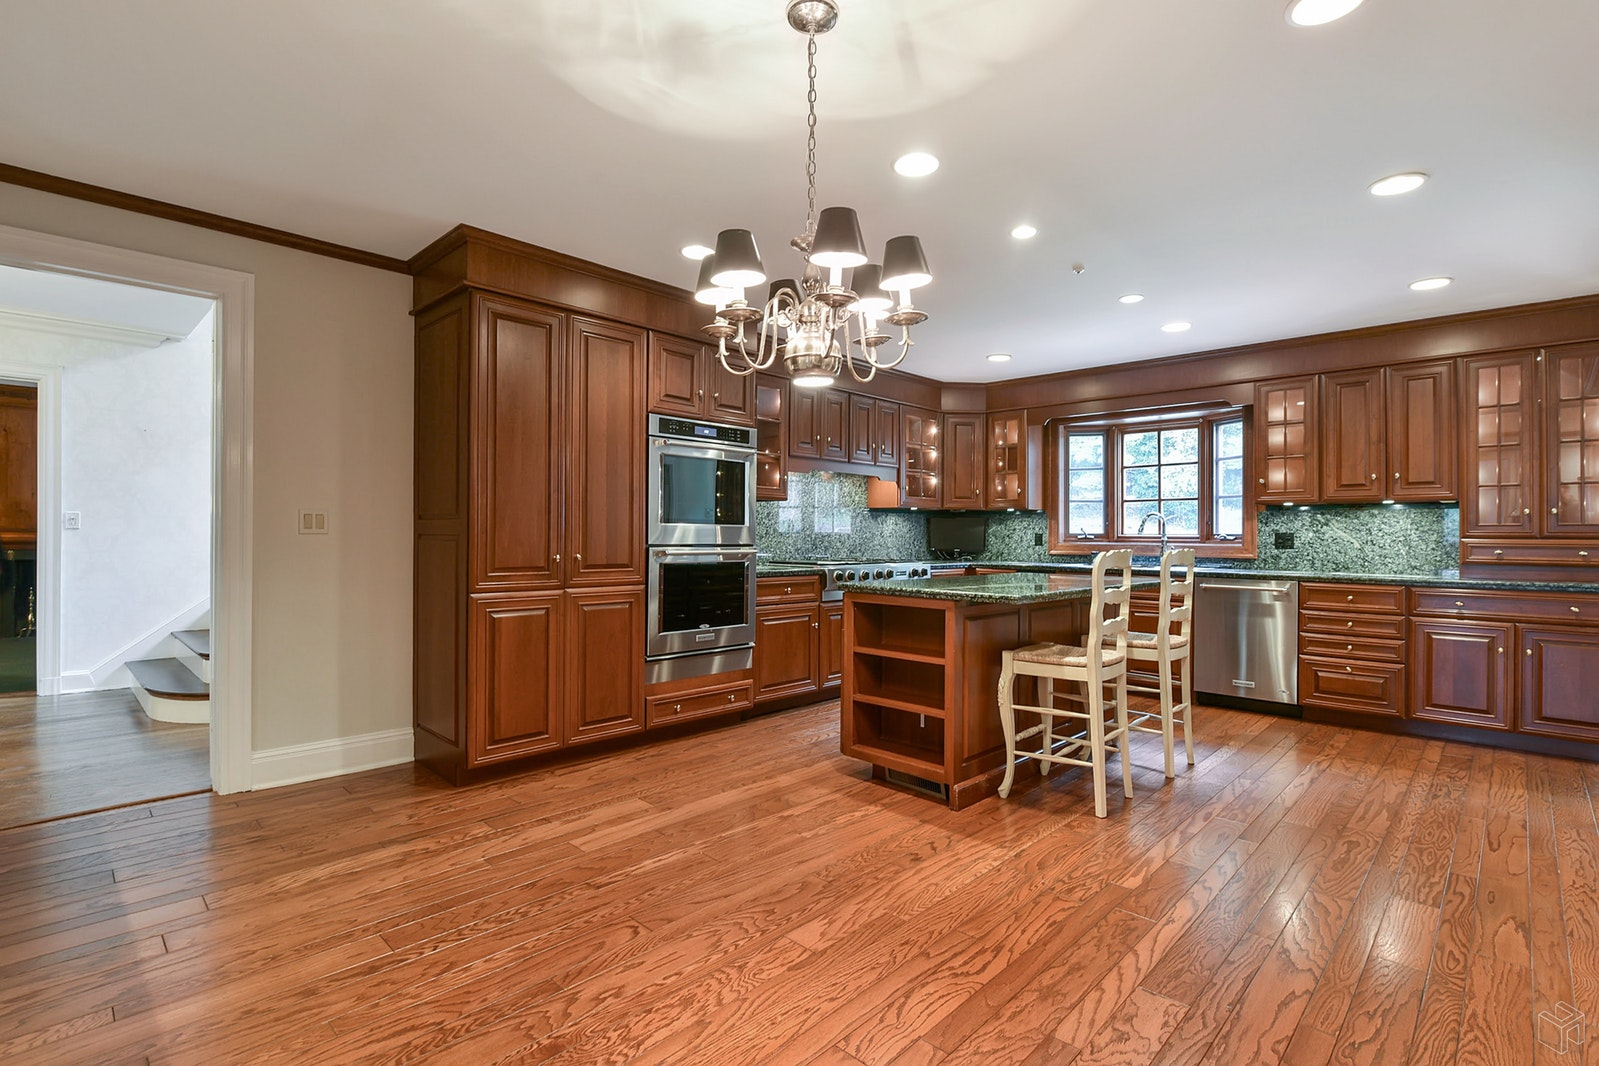 288 Upper Avenue Mountain, Montclair, New Jersey, 07043, $1,629,000, Sold Property, Halstead Real Estate, Photo 10